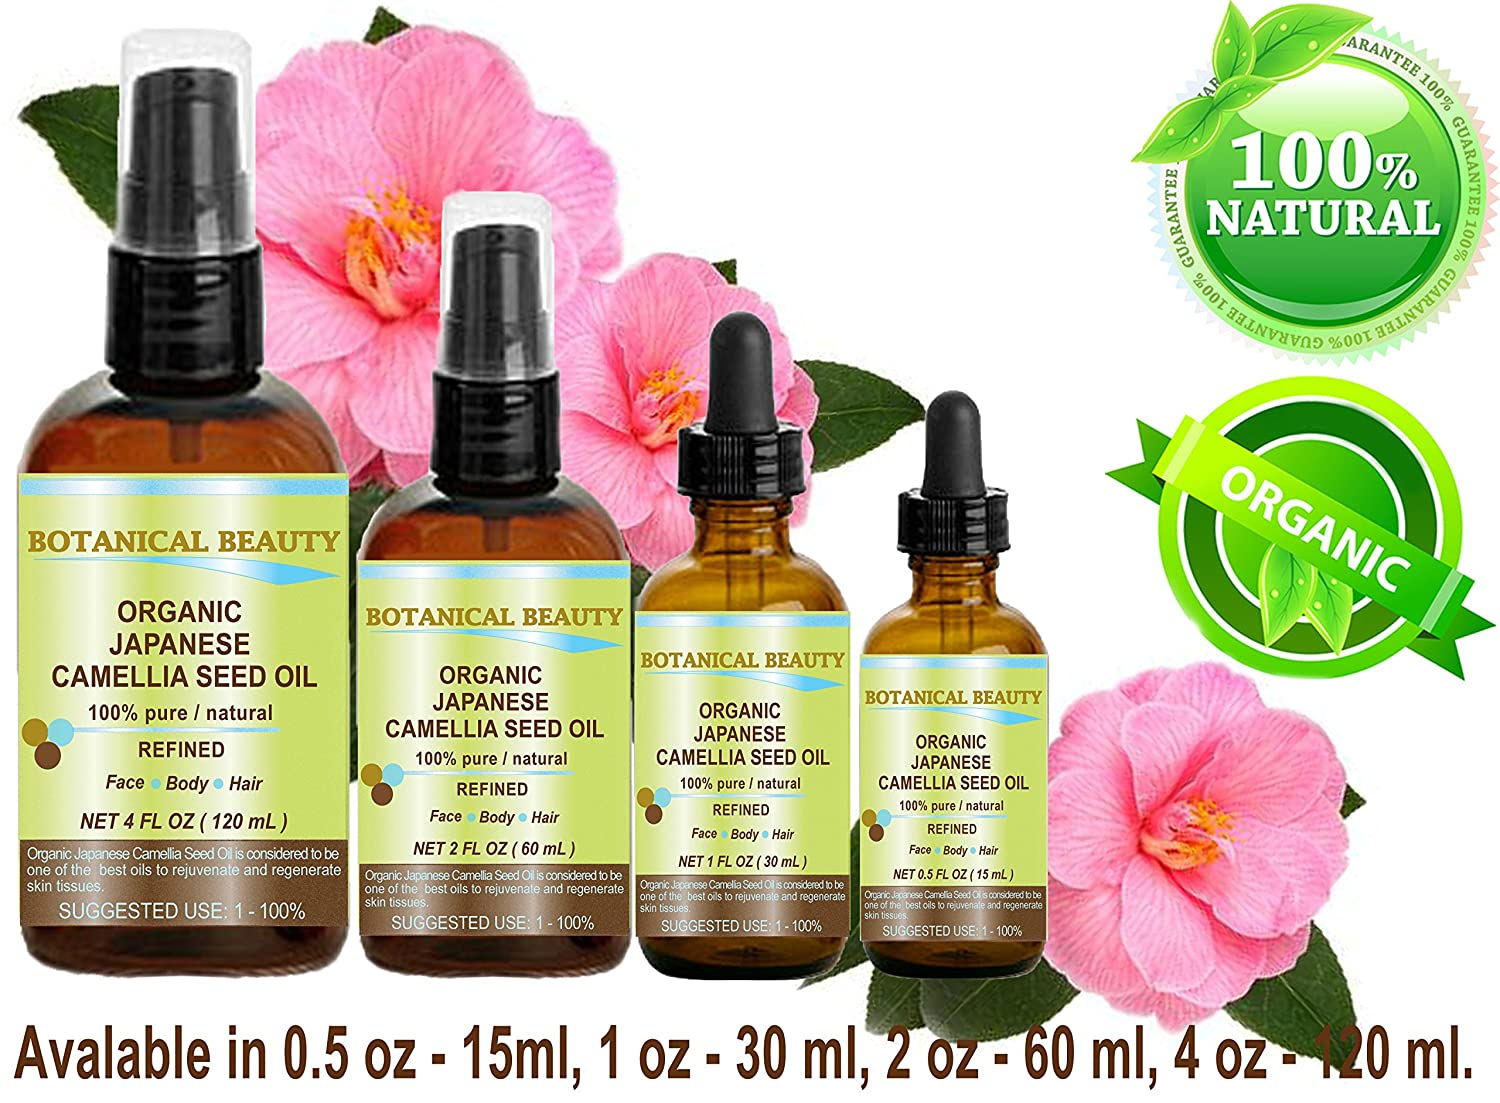 Amazon Japanese Organic Camellia Seed Oil 100 Pure Natural